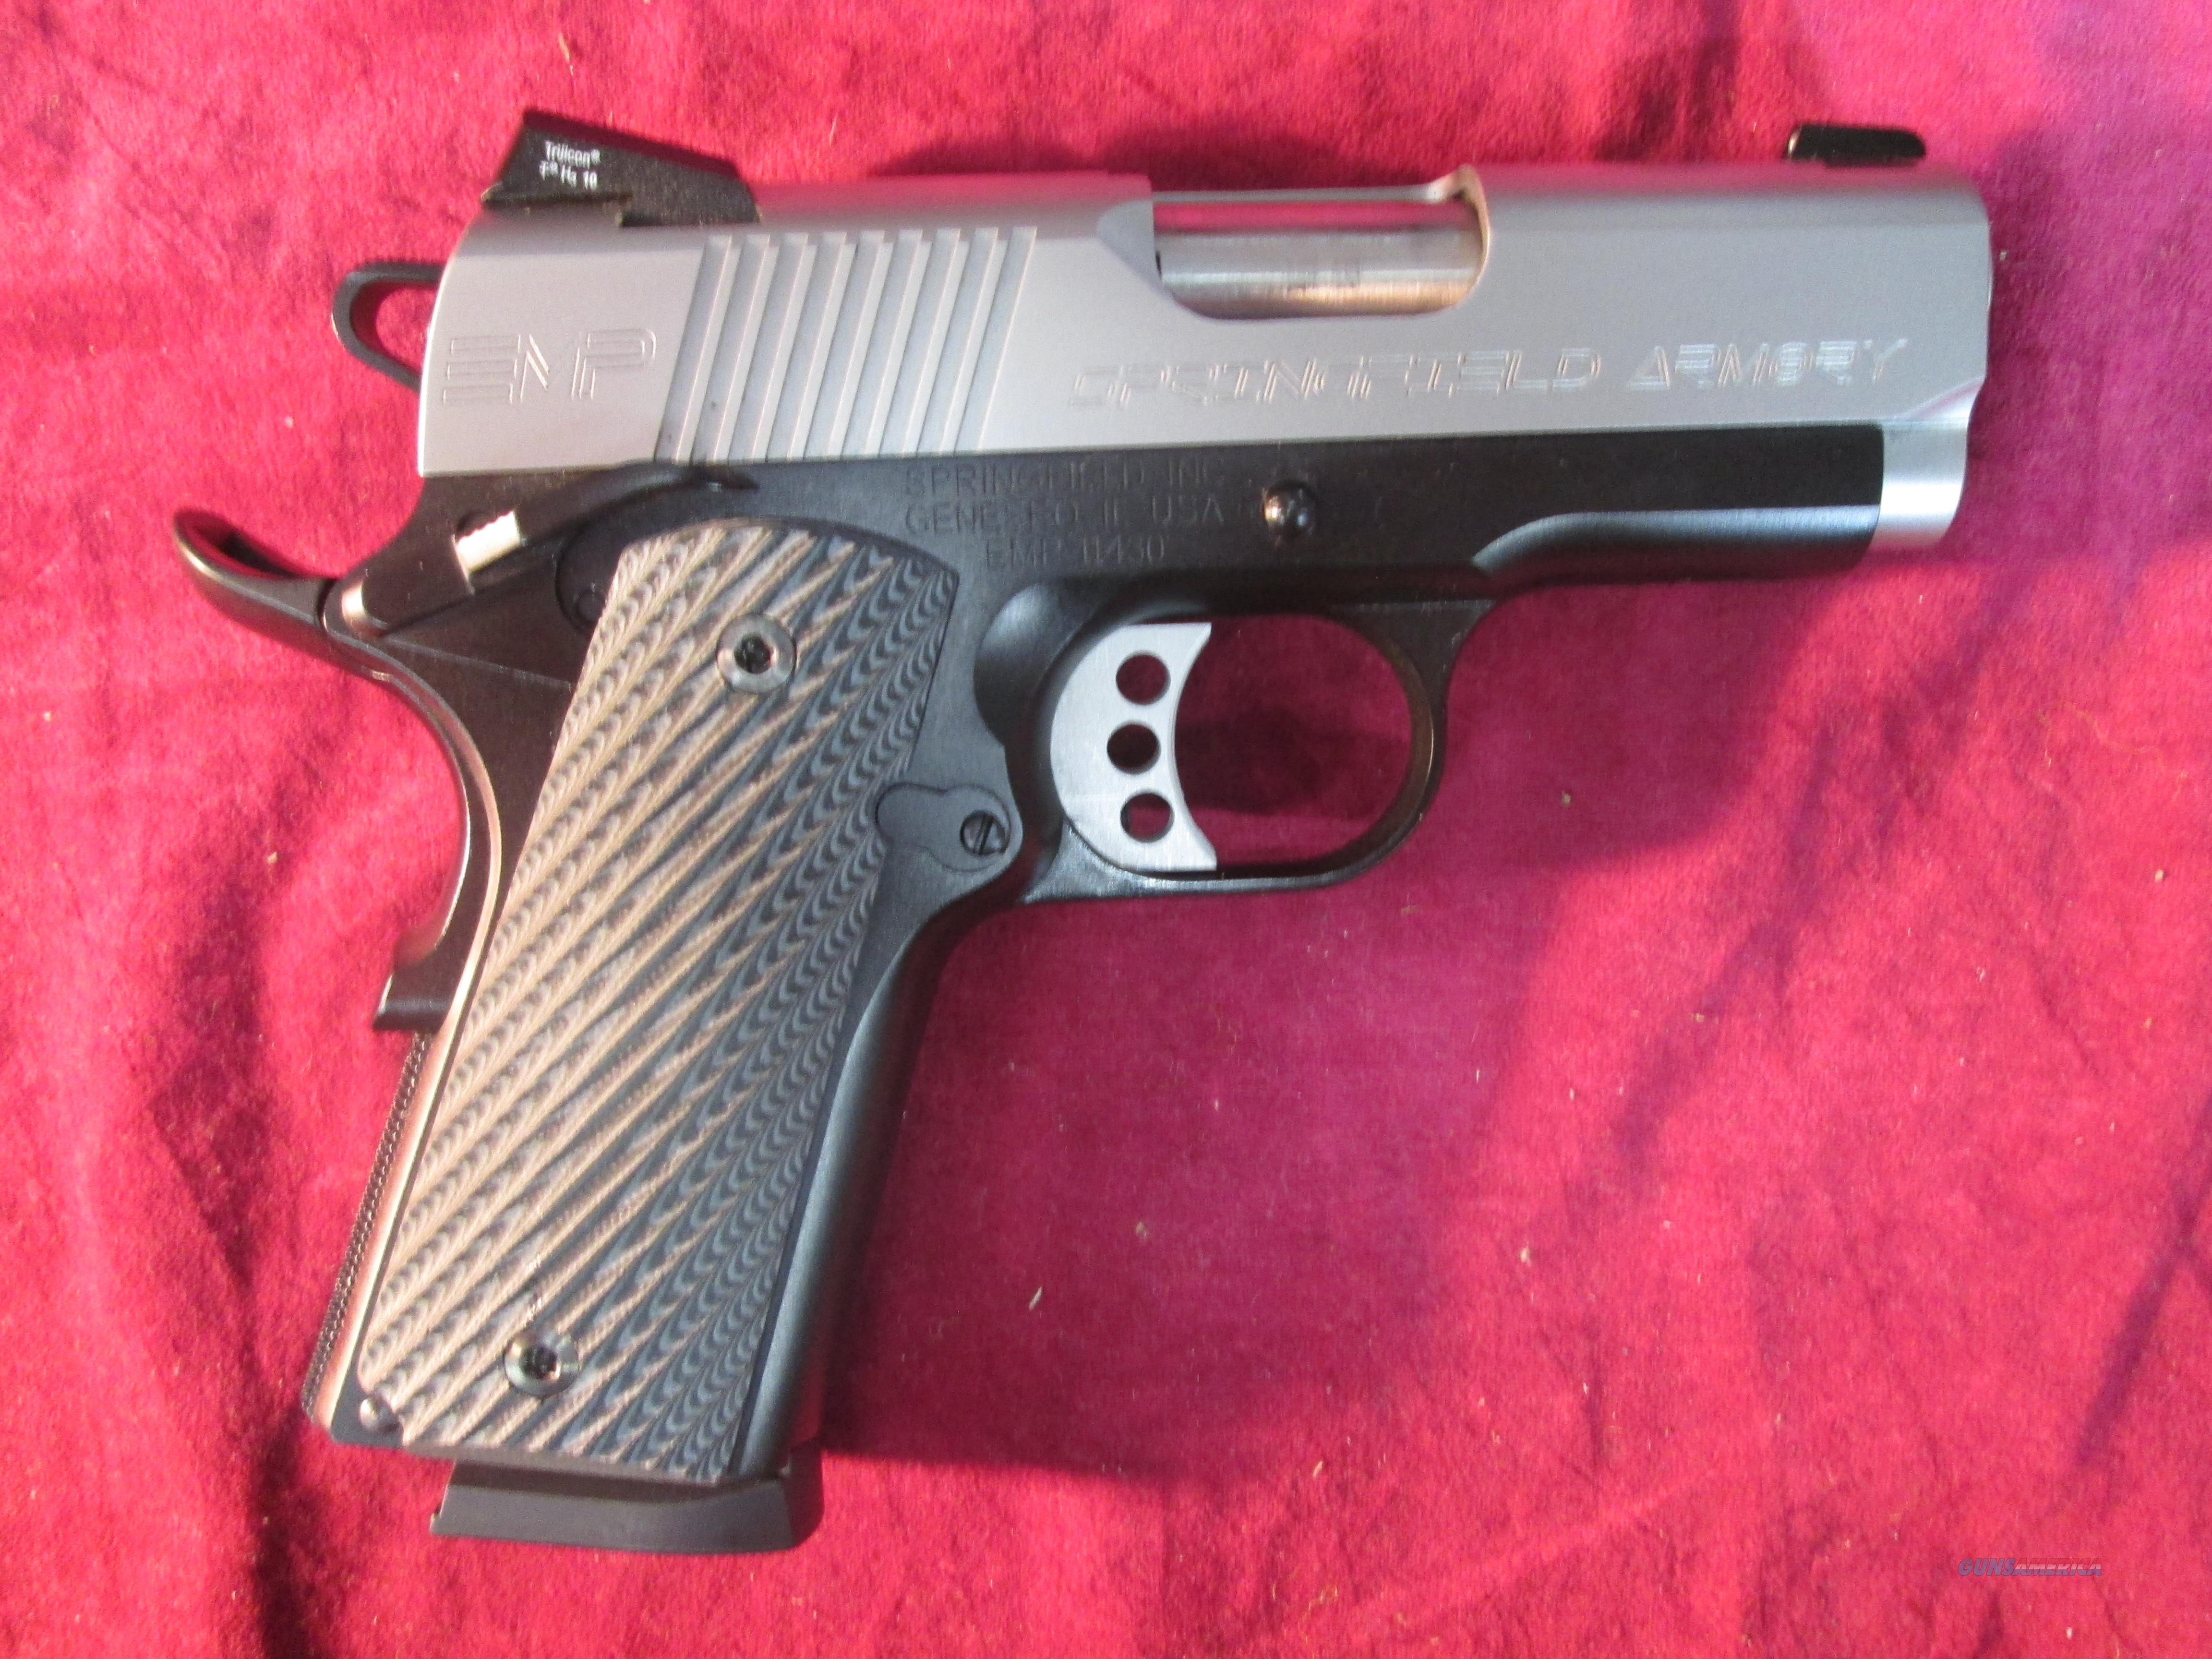 SPRINGFIELD ARMORY EMP MICRO-COMP. 40CAL WITH G10 GRIPS USED  Guns > Pistols > Springfield Armory Pistols > 1911 Type